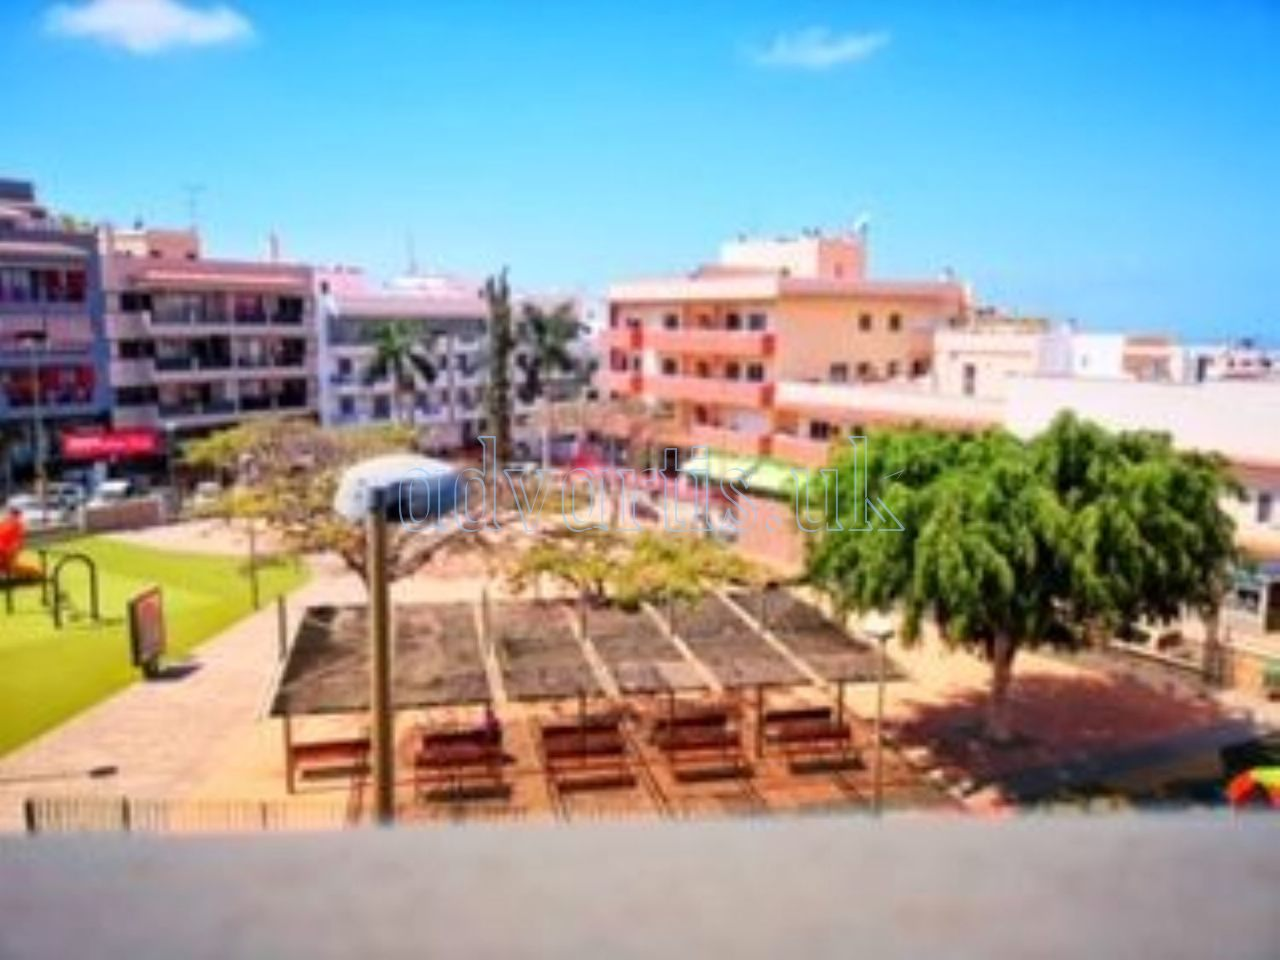 2 bedroom apartment for sale in Adeje, Tenerife €159.000